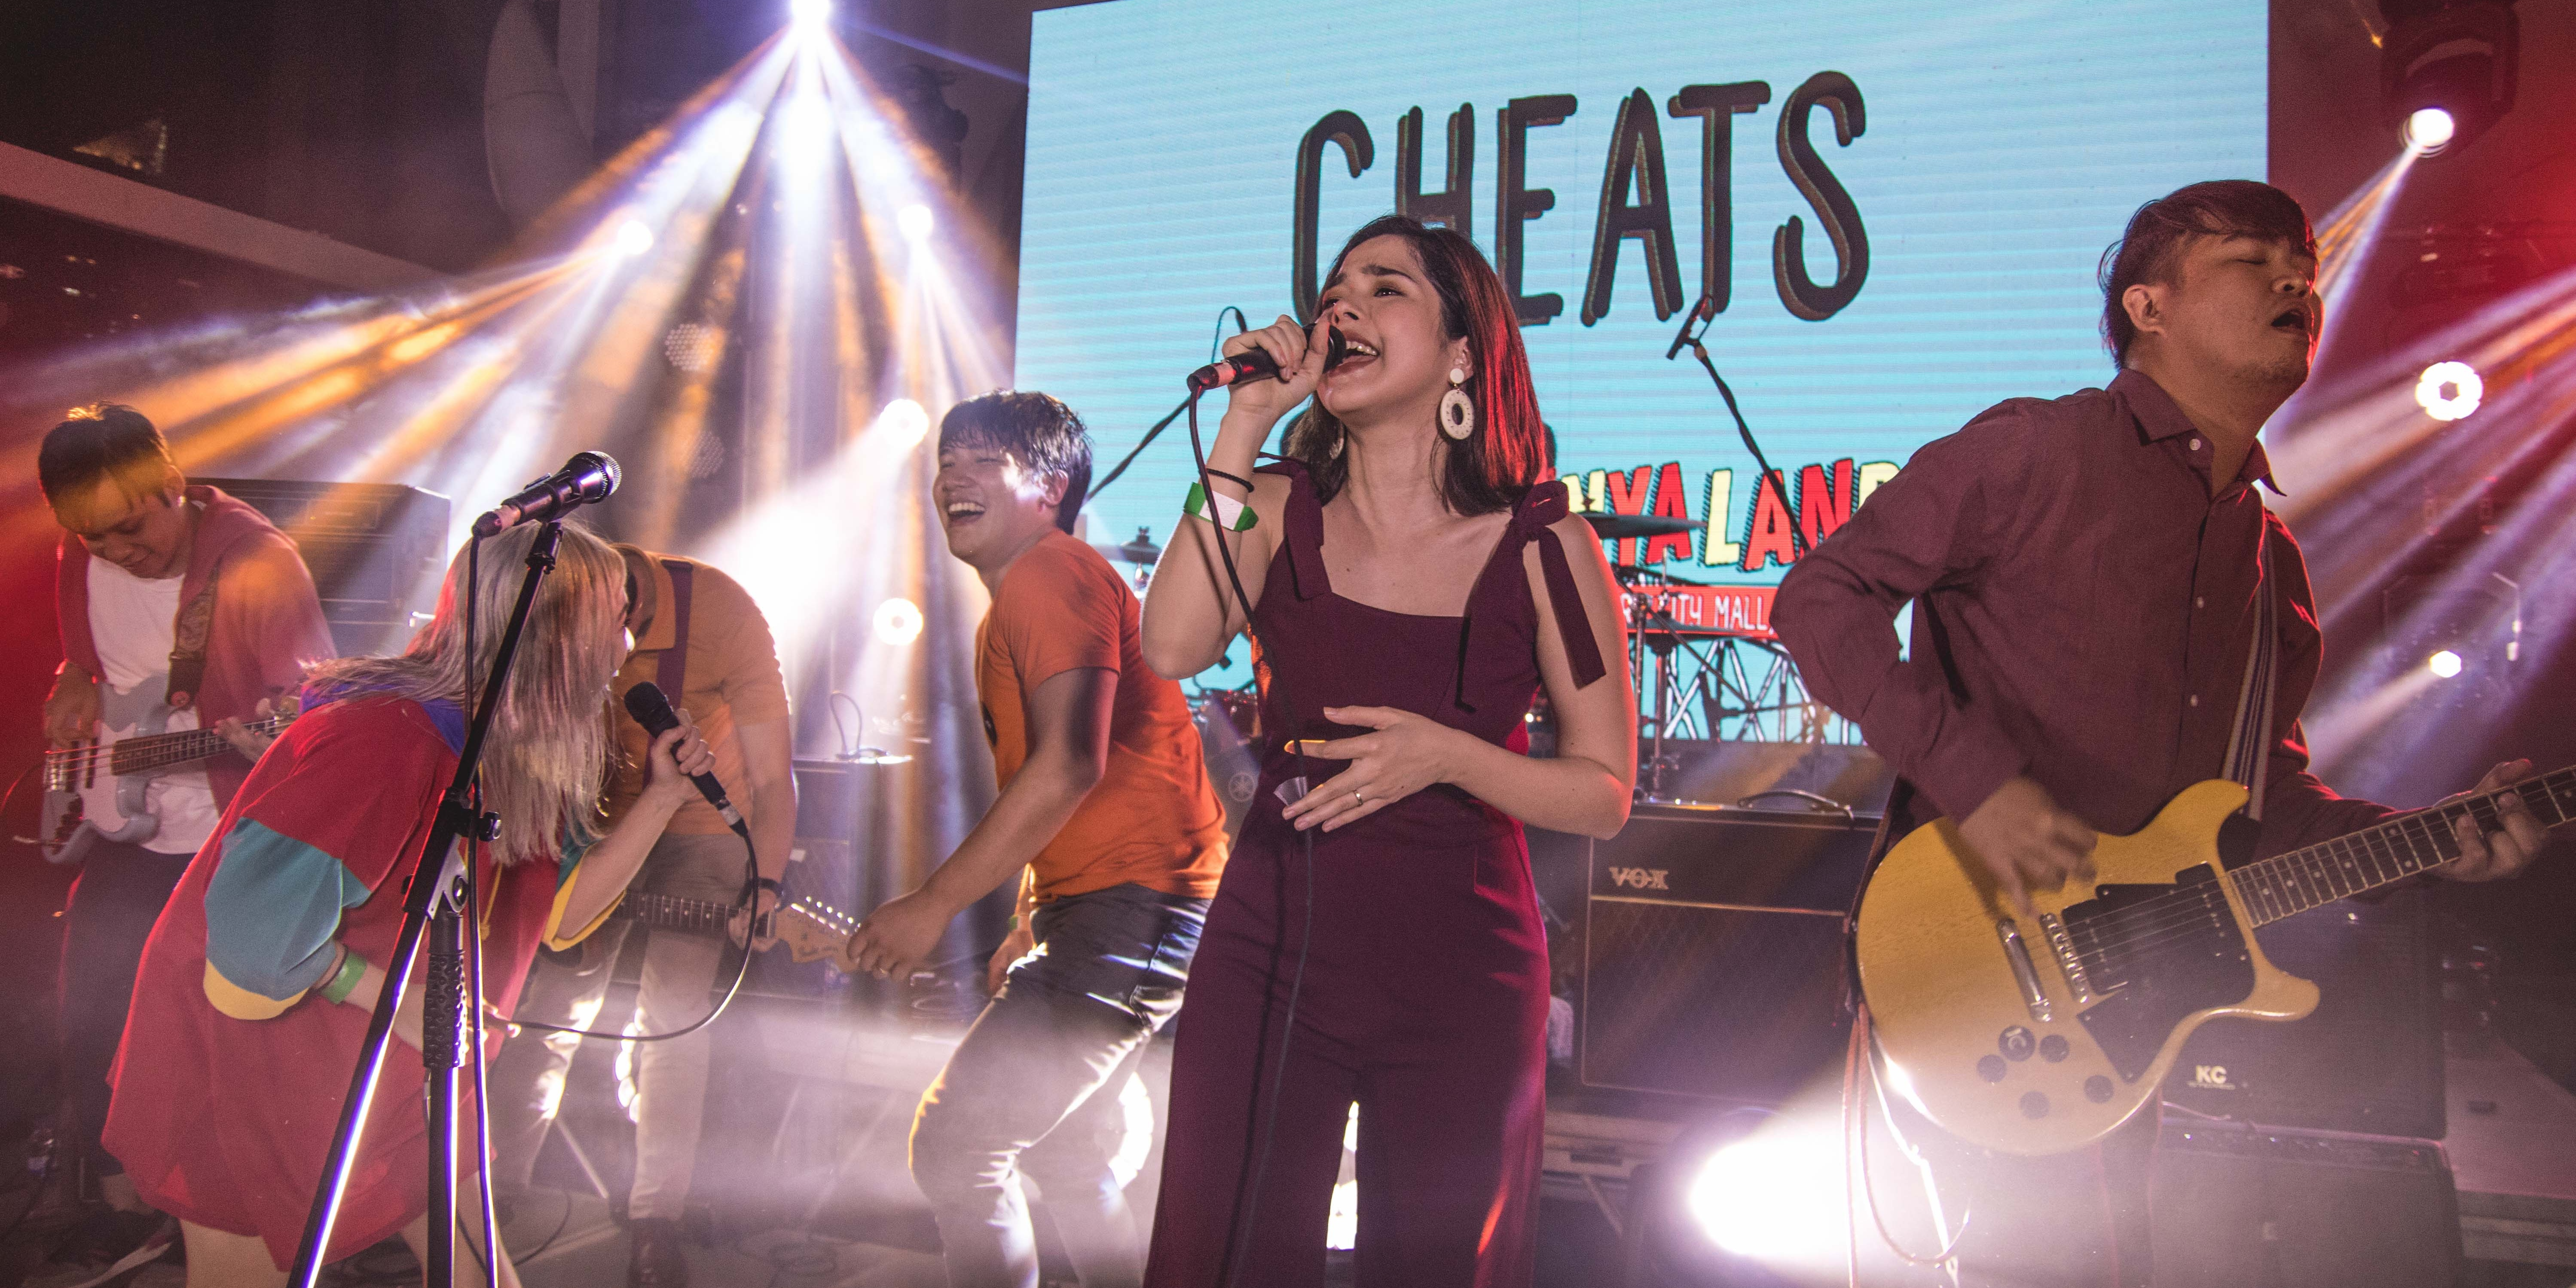 Linya-Linya Land brings the fun in puns with Cheats, Sandwich, Autotelic, and more – photo gallery